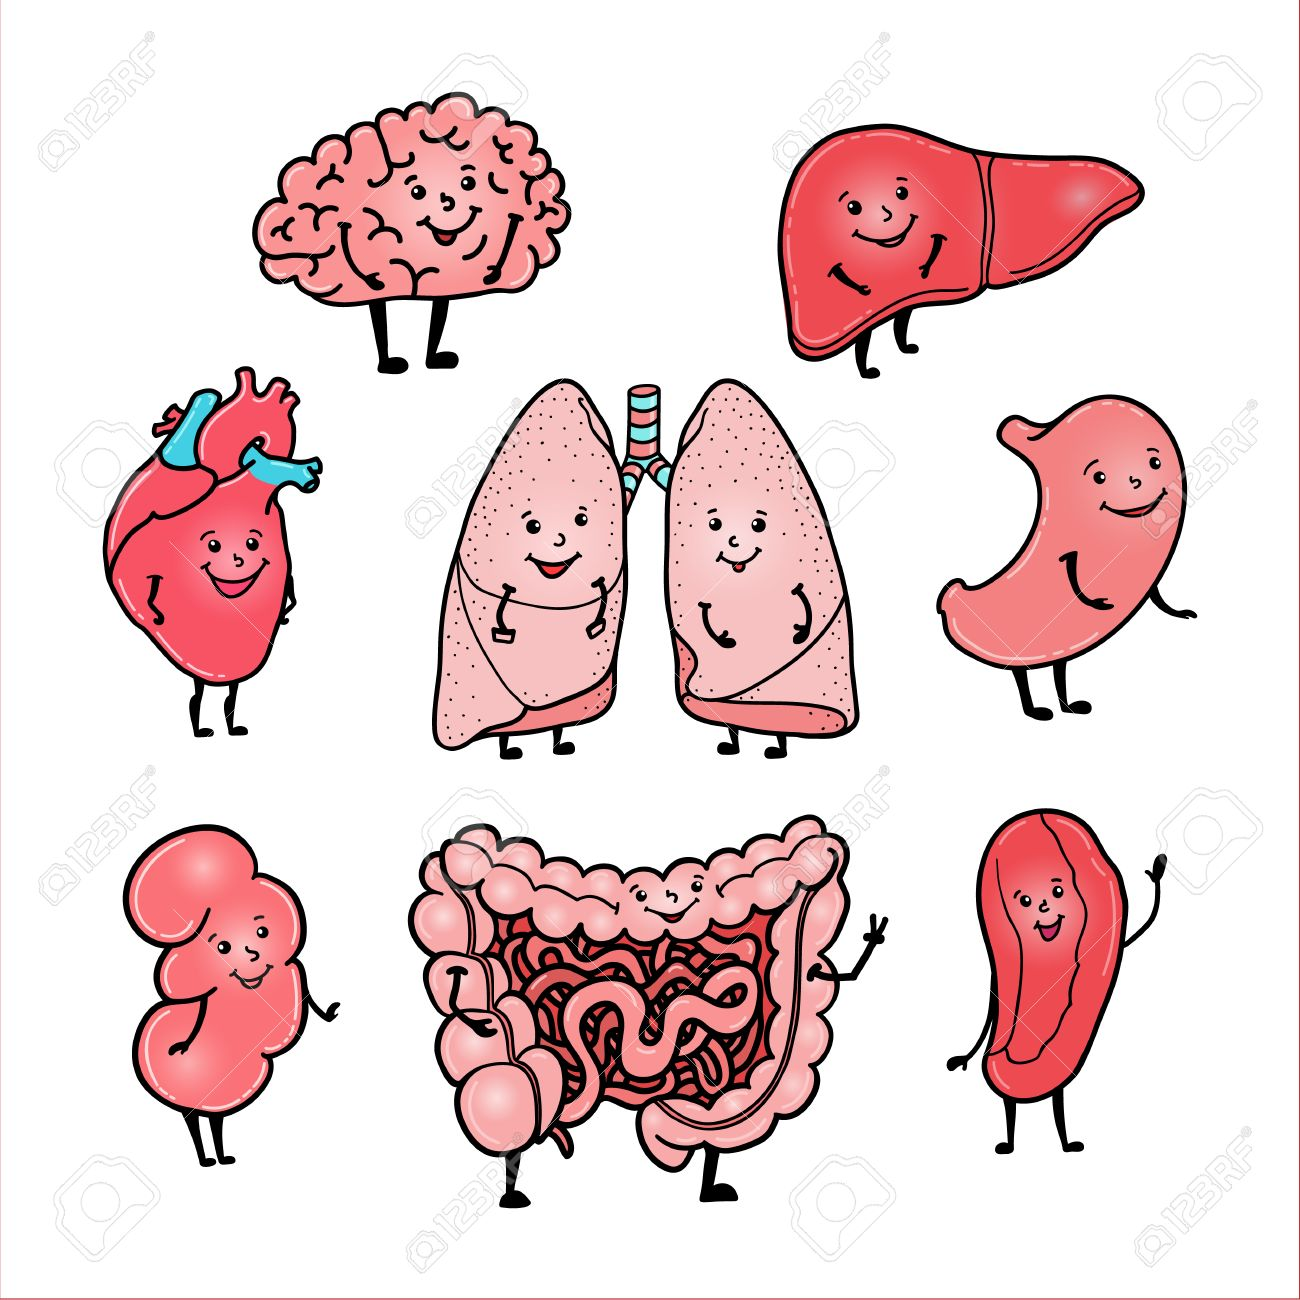 Set Of Cute And Funny Human Organs - Brain, Heart, Liver, Kidney ...